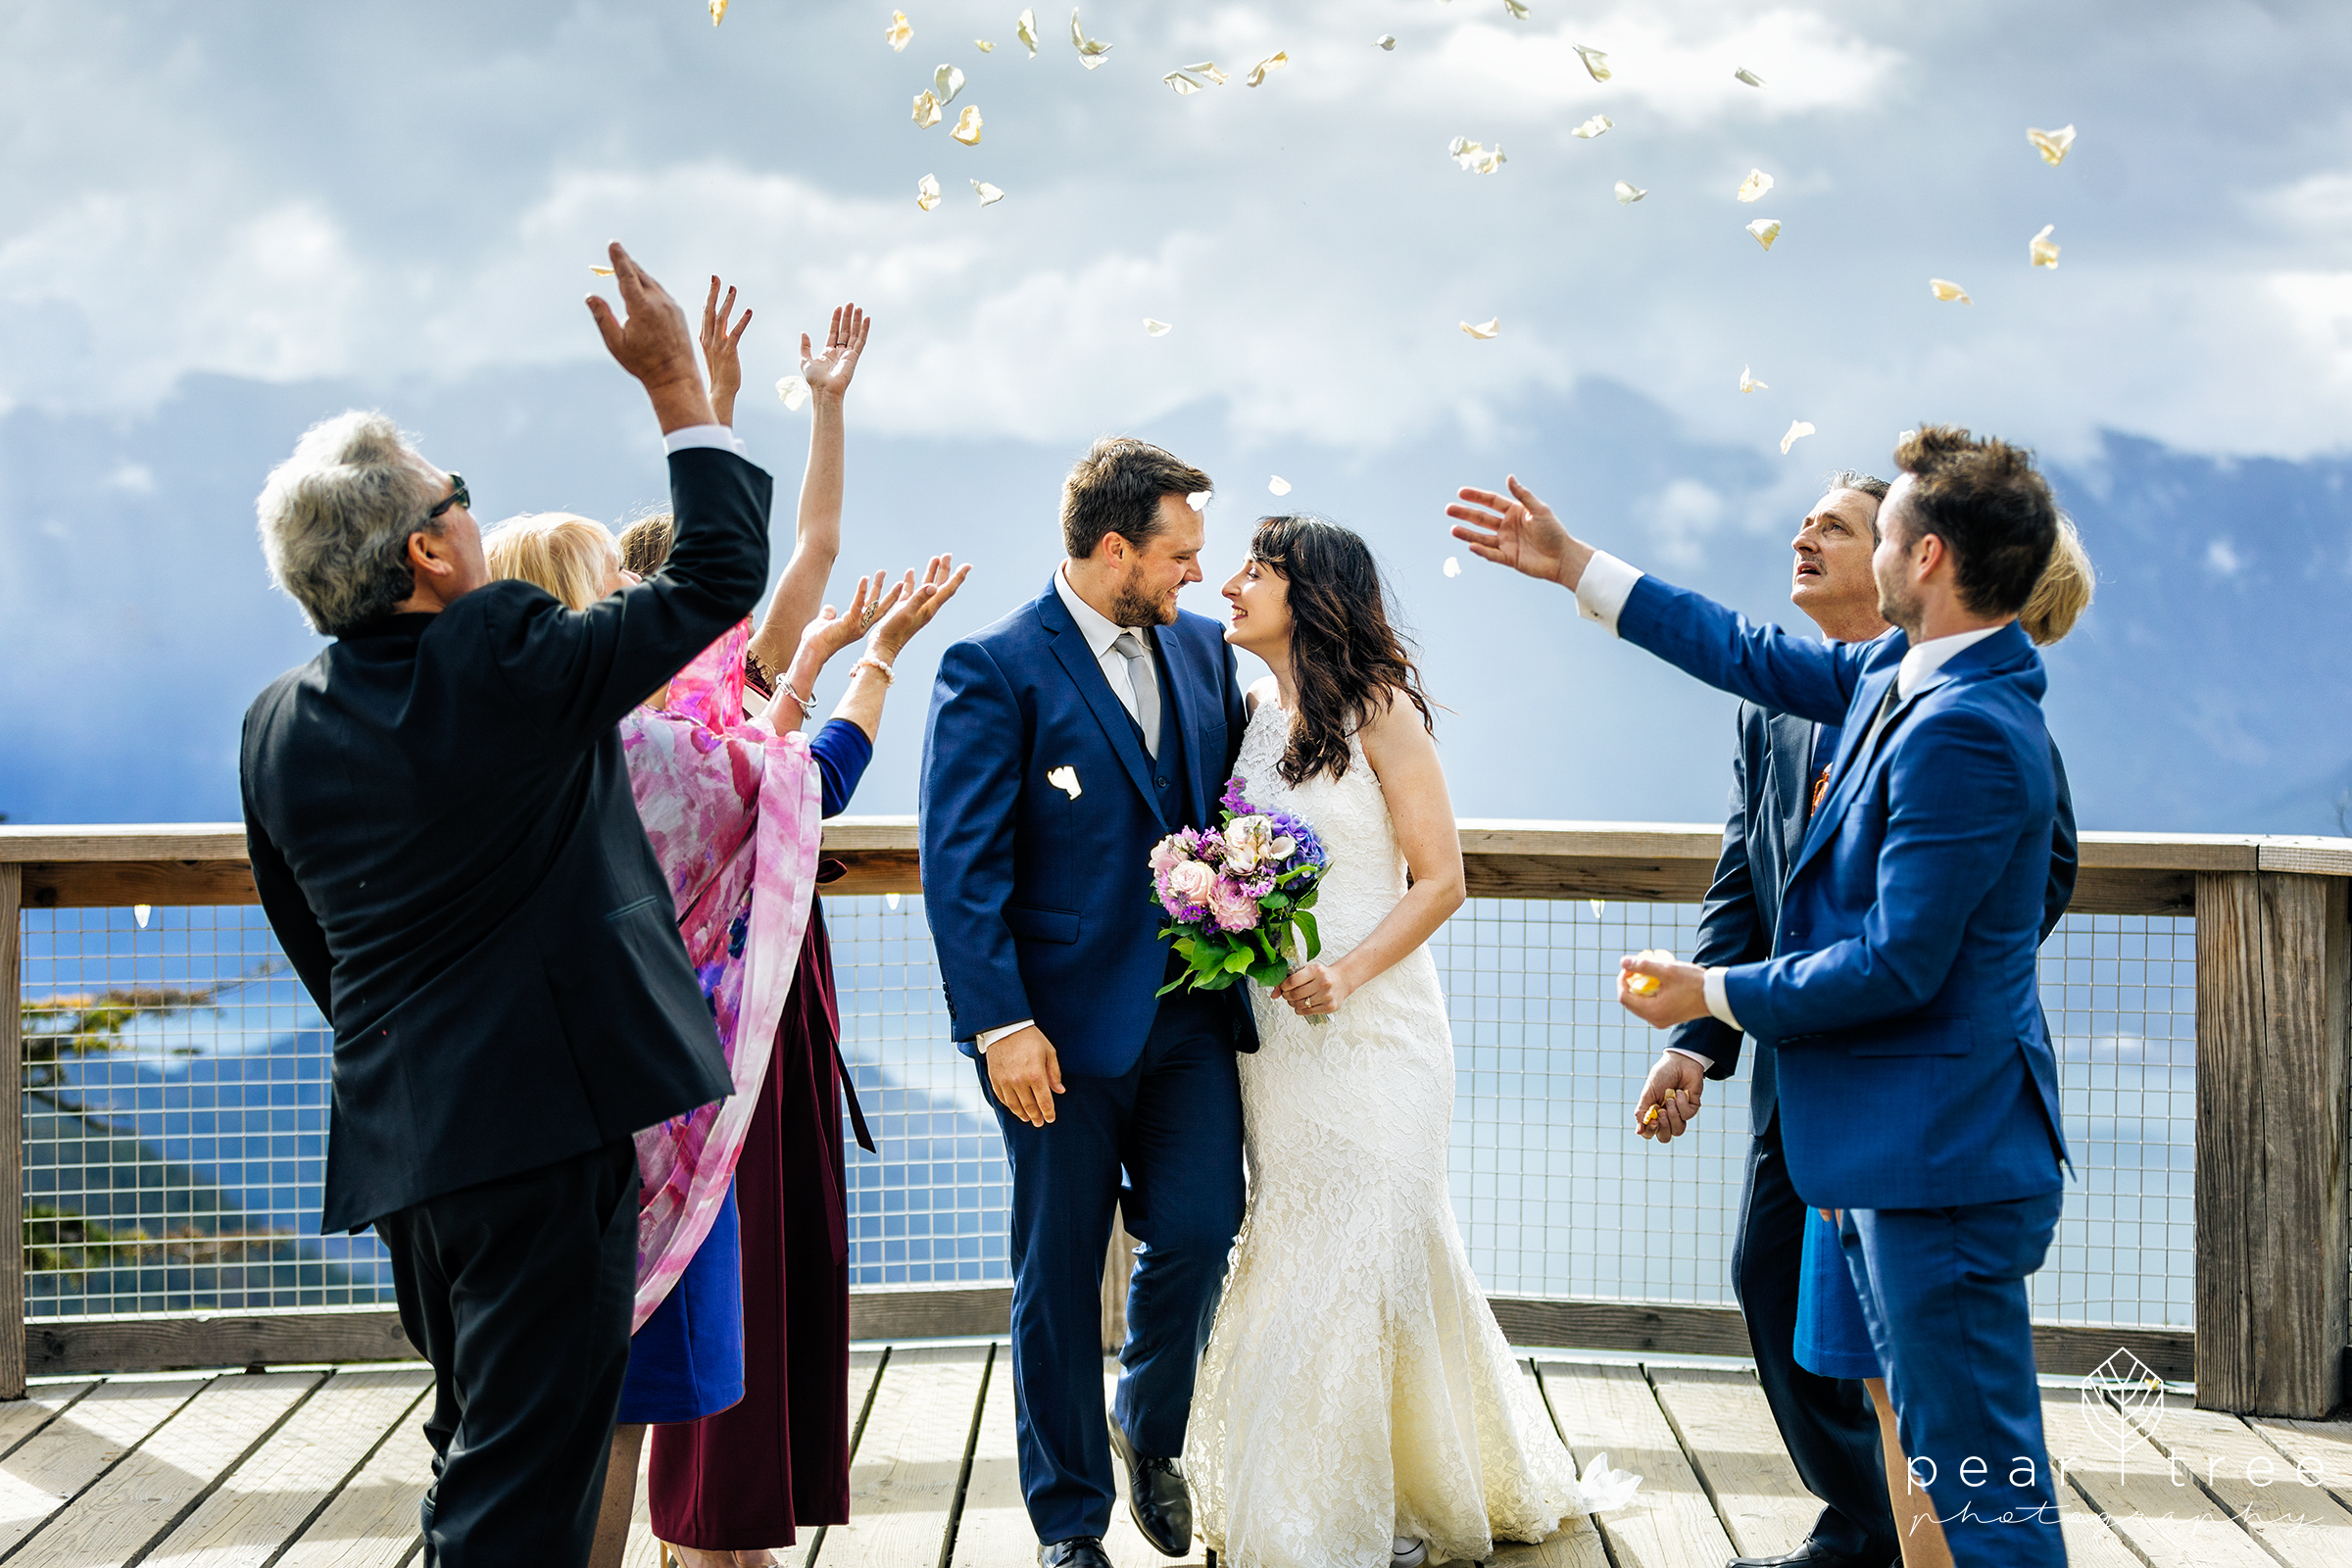 Sea to Sky Gondola Wedding Photography